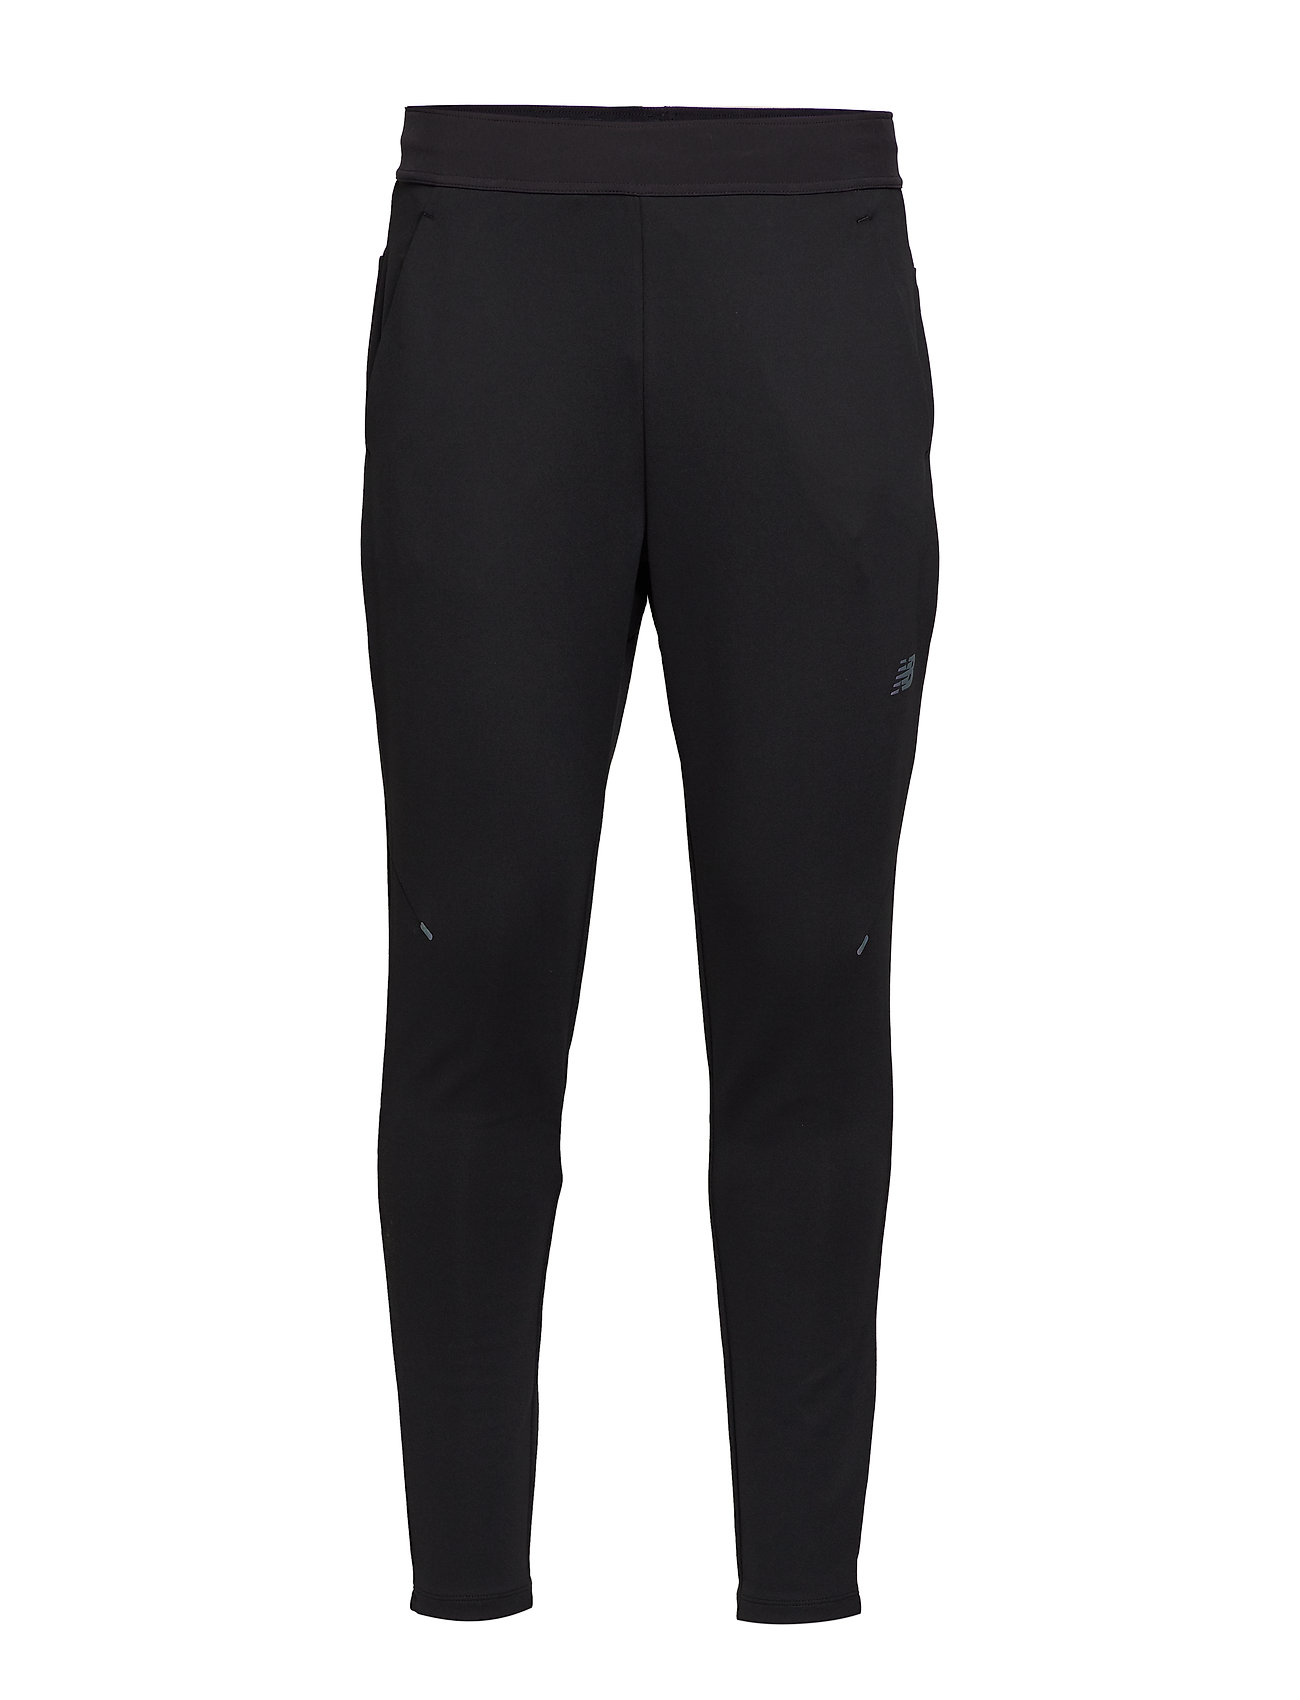 New Balance Q SPEED CREW RUN PANT - BLACK